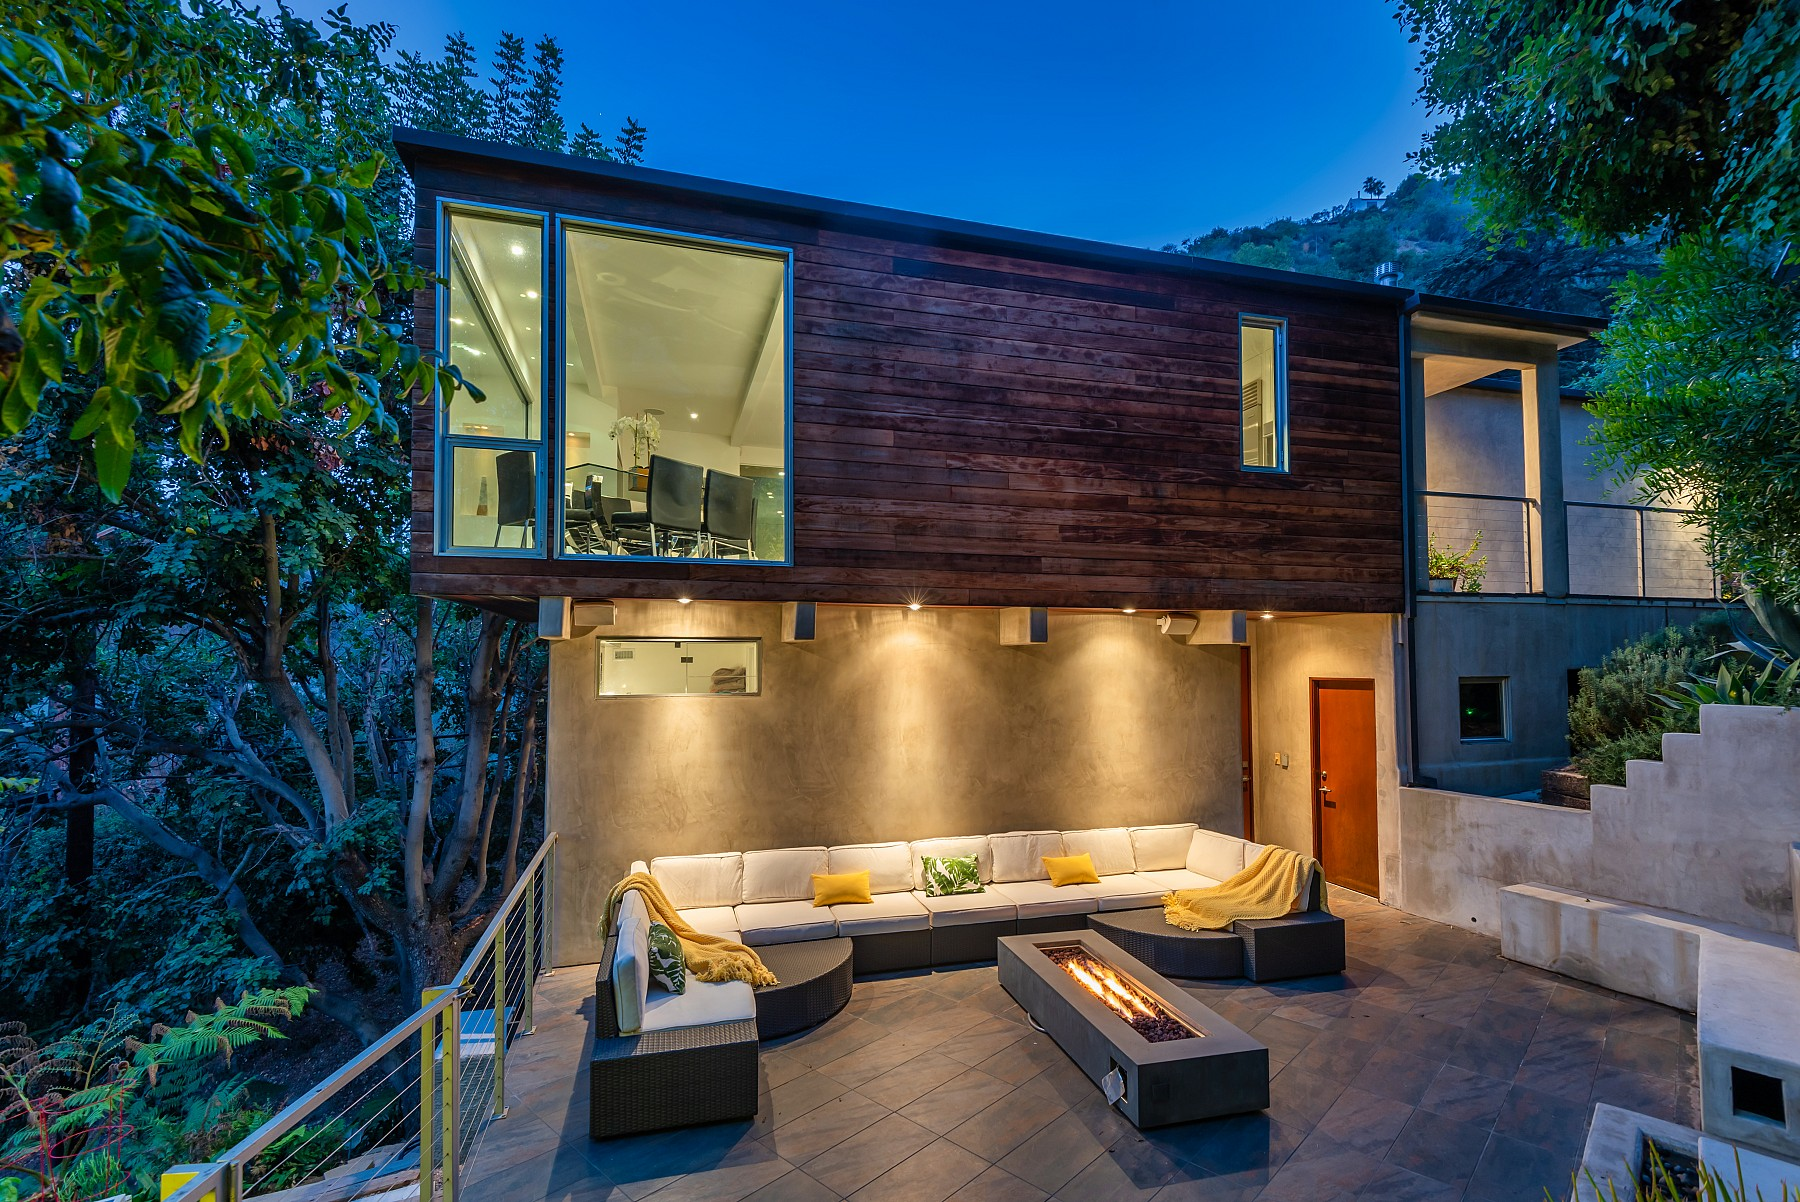 8121 Gould Ave, Los Angeles, CA 90046